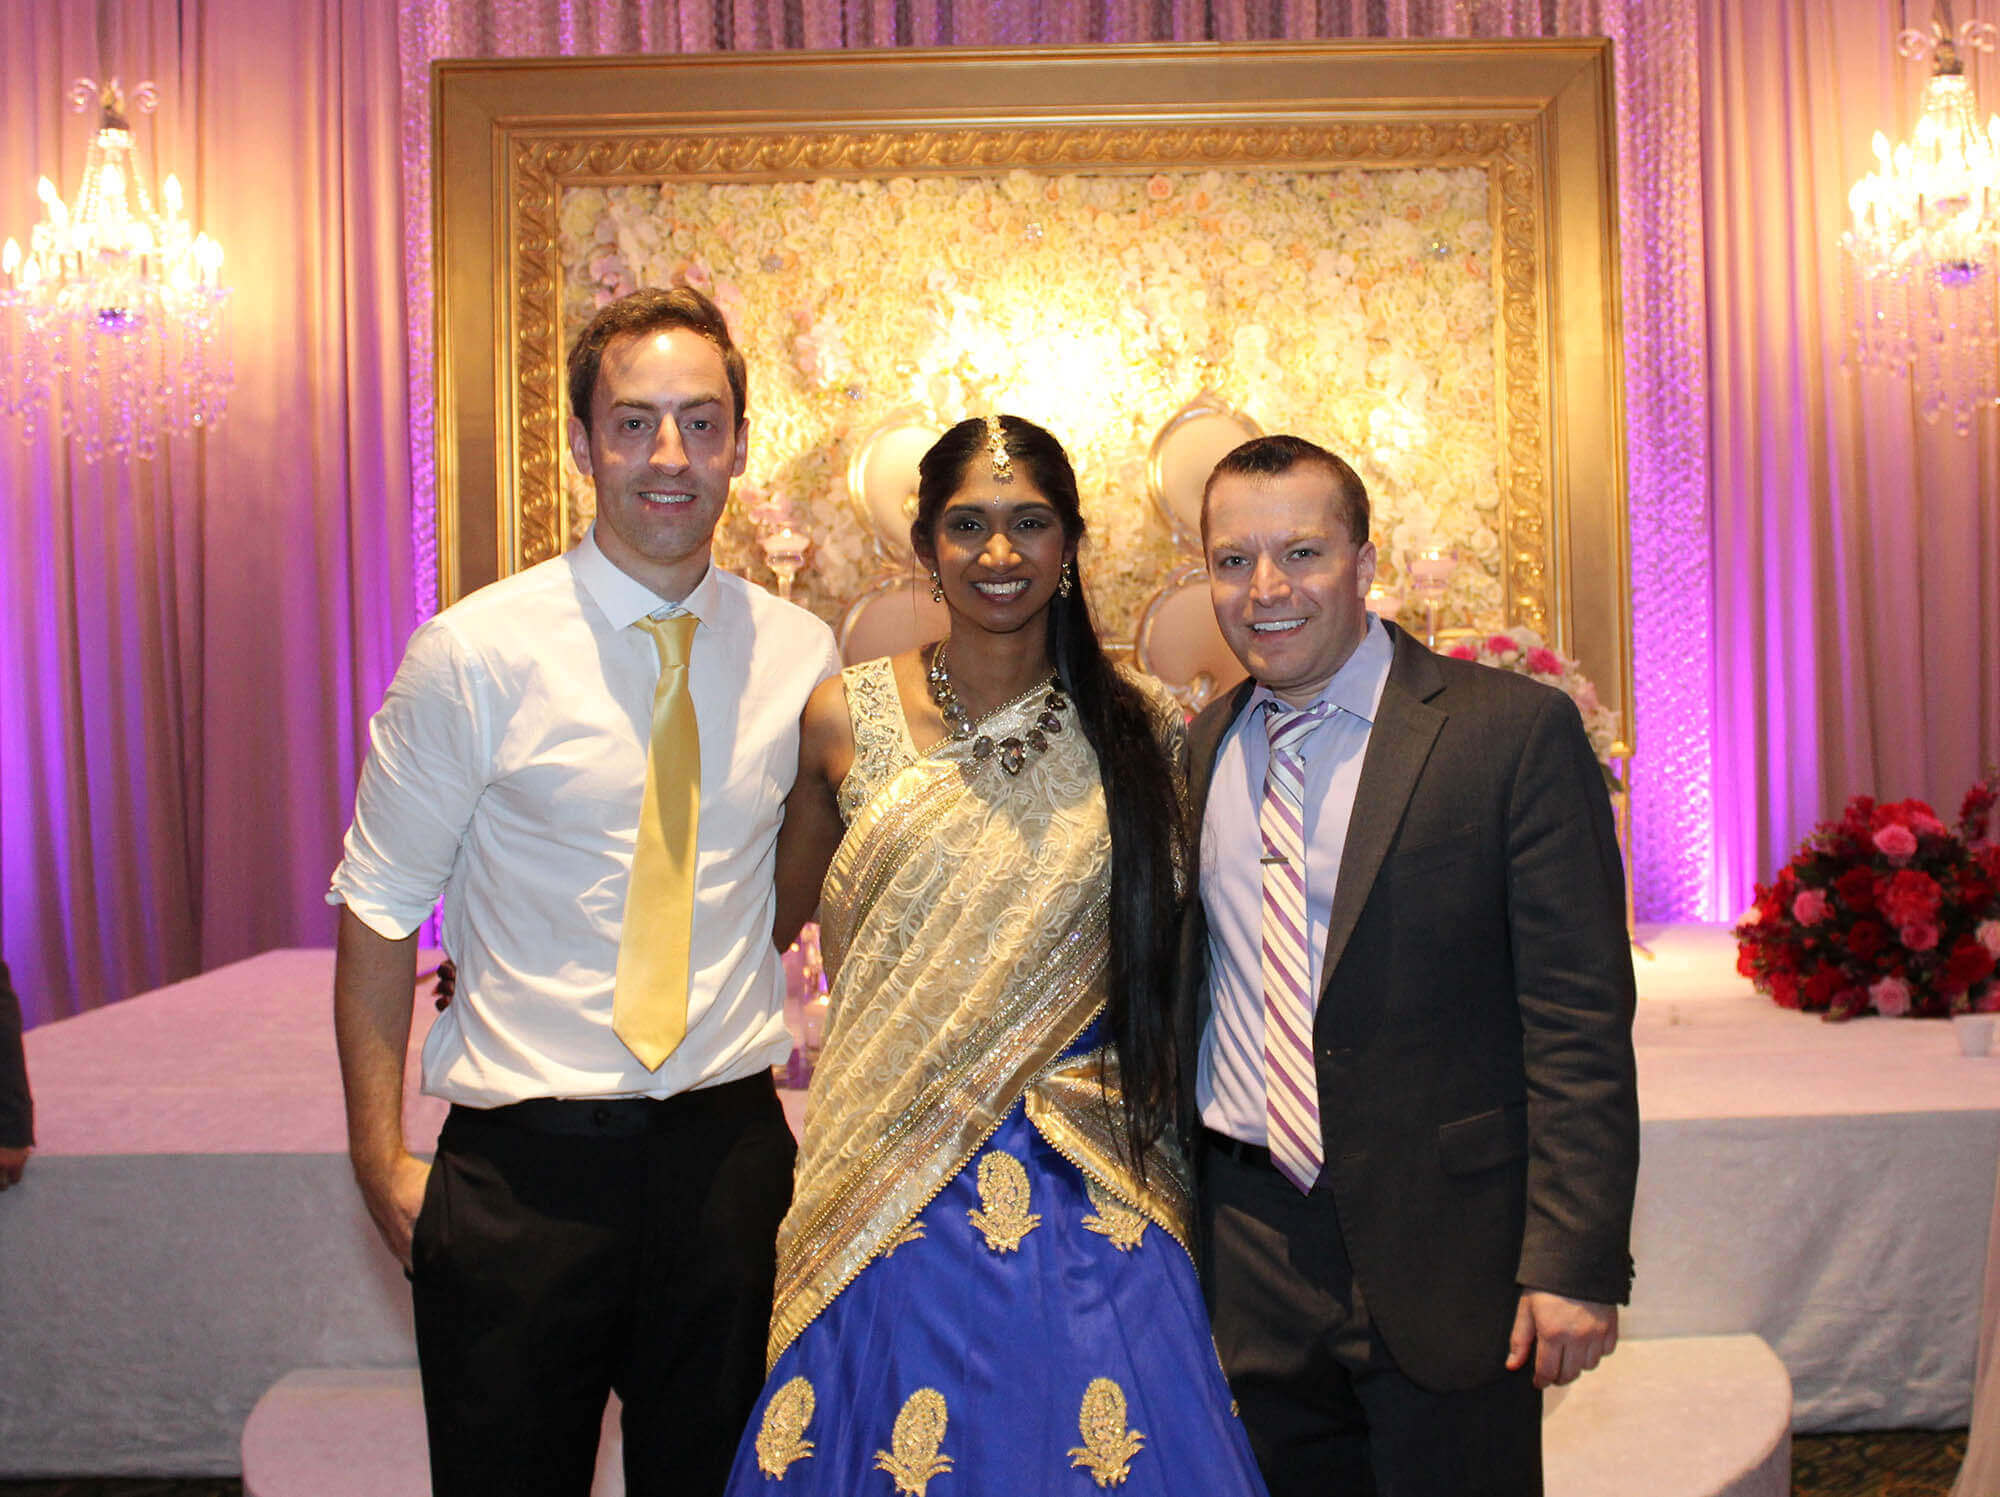 Asha, Dustin, and Paul together after the wedding